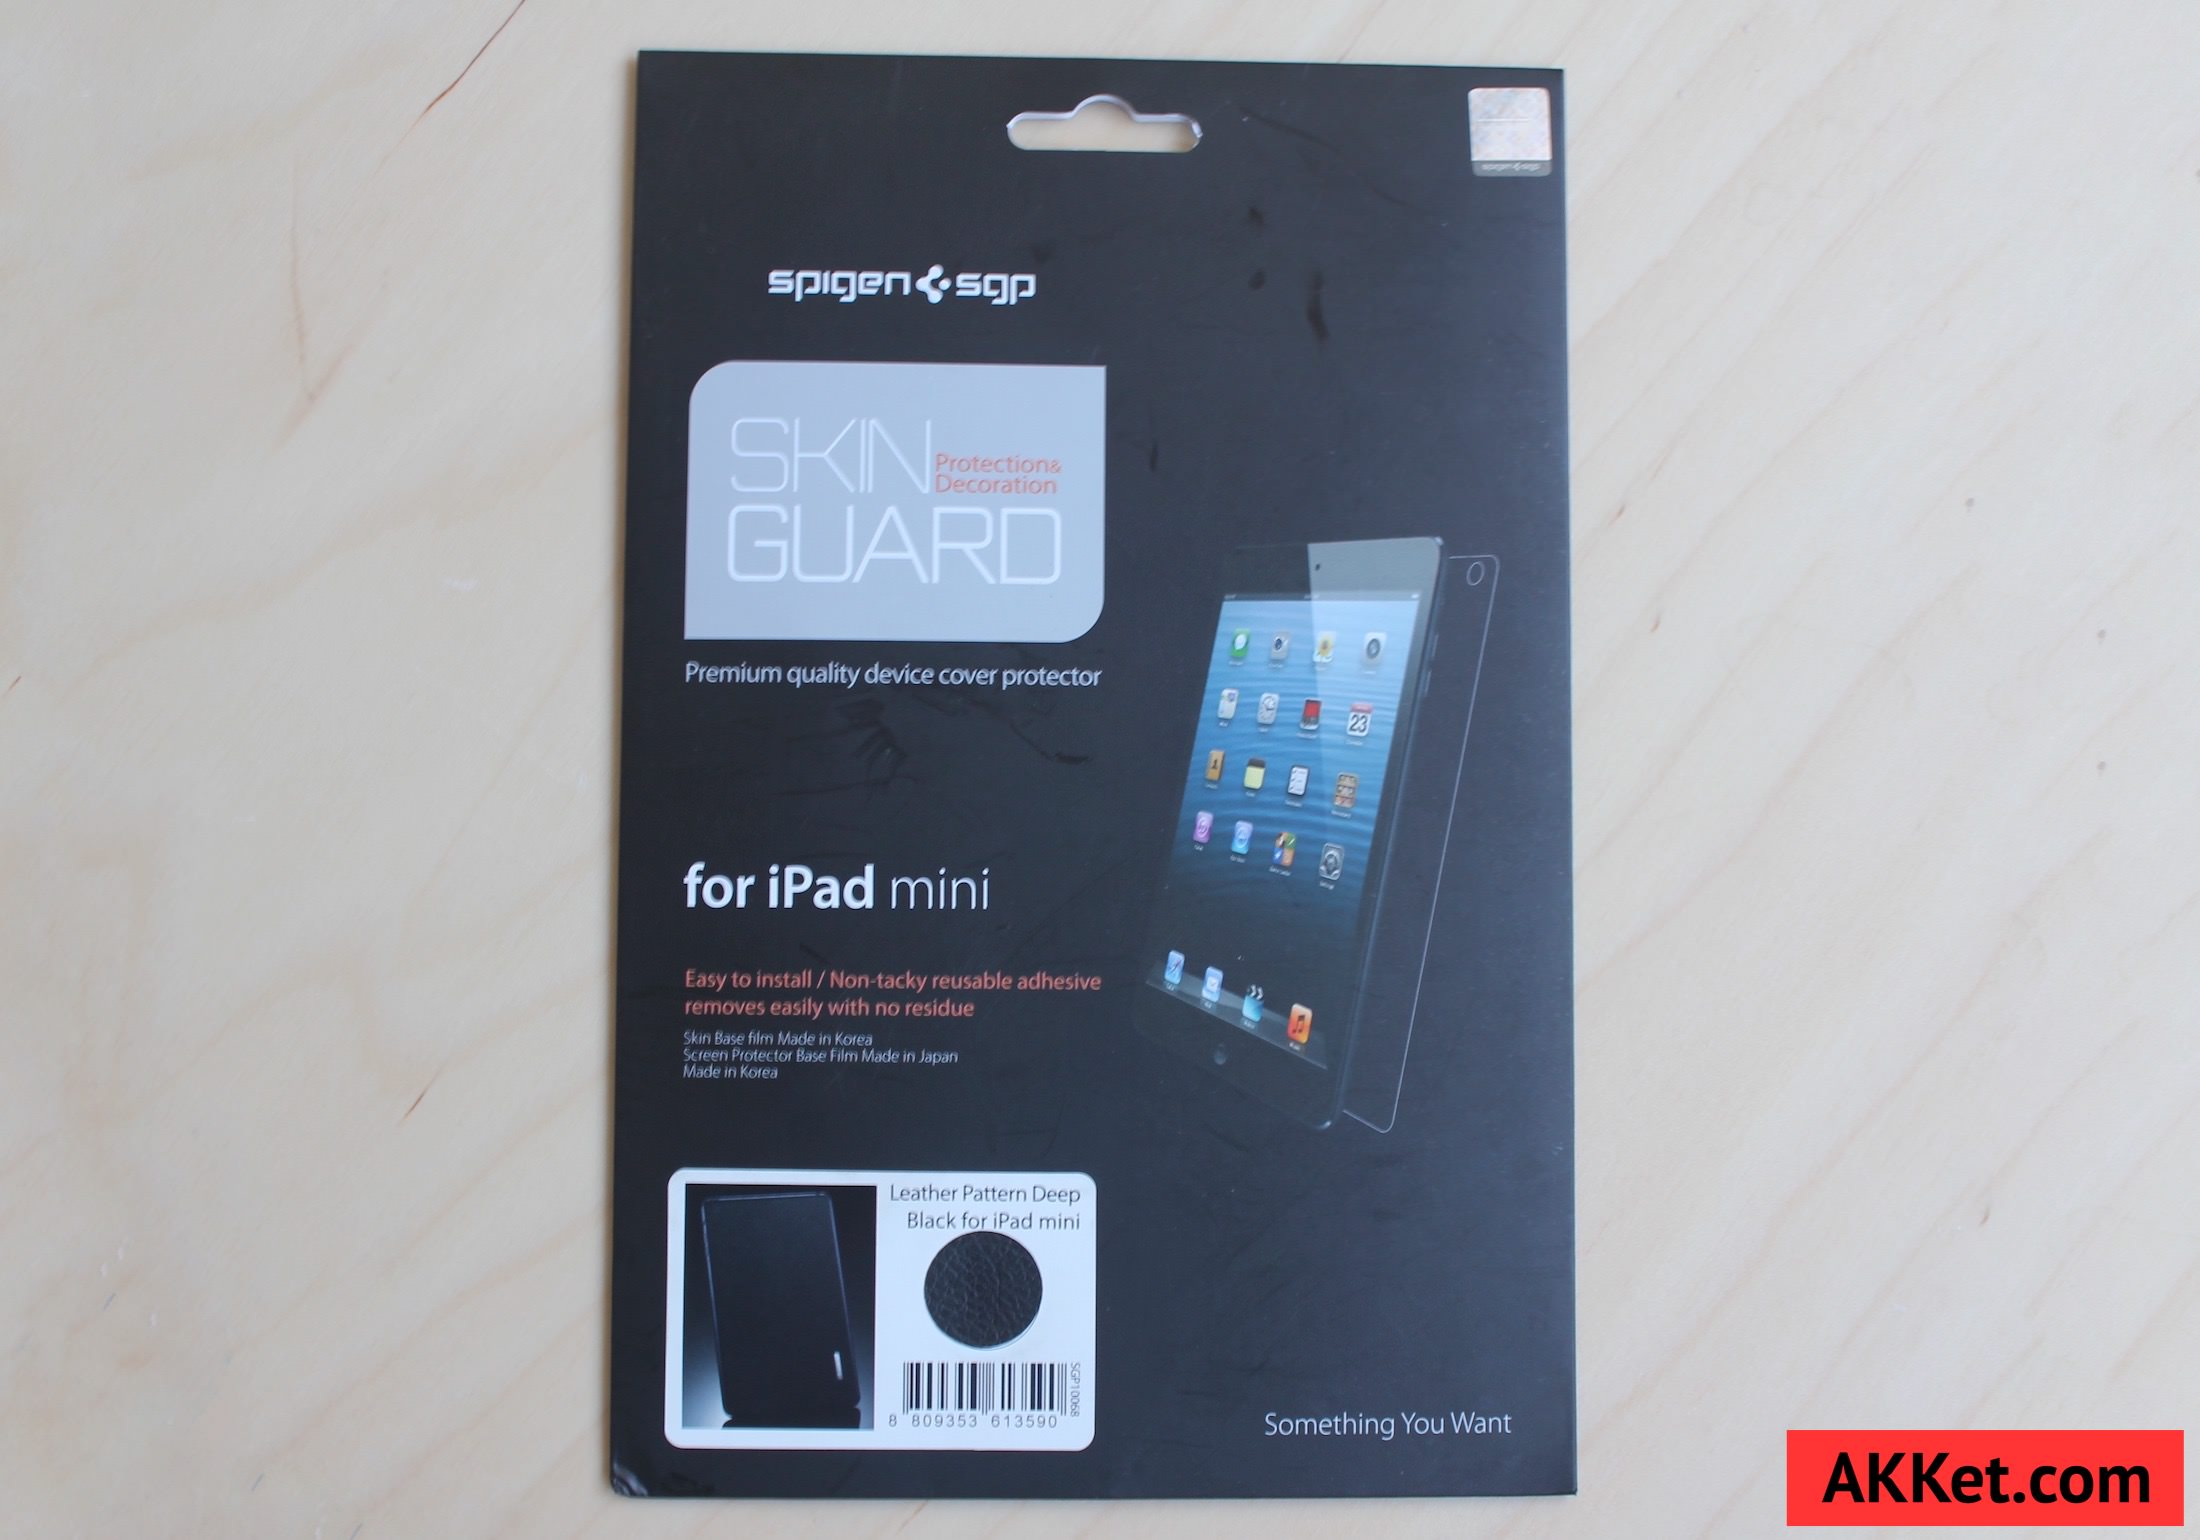 Spigen SGP SkinGuard iPad mini 4 review 2